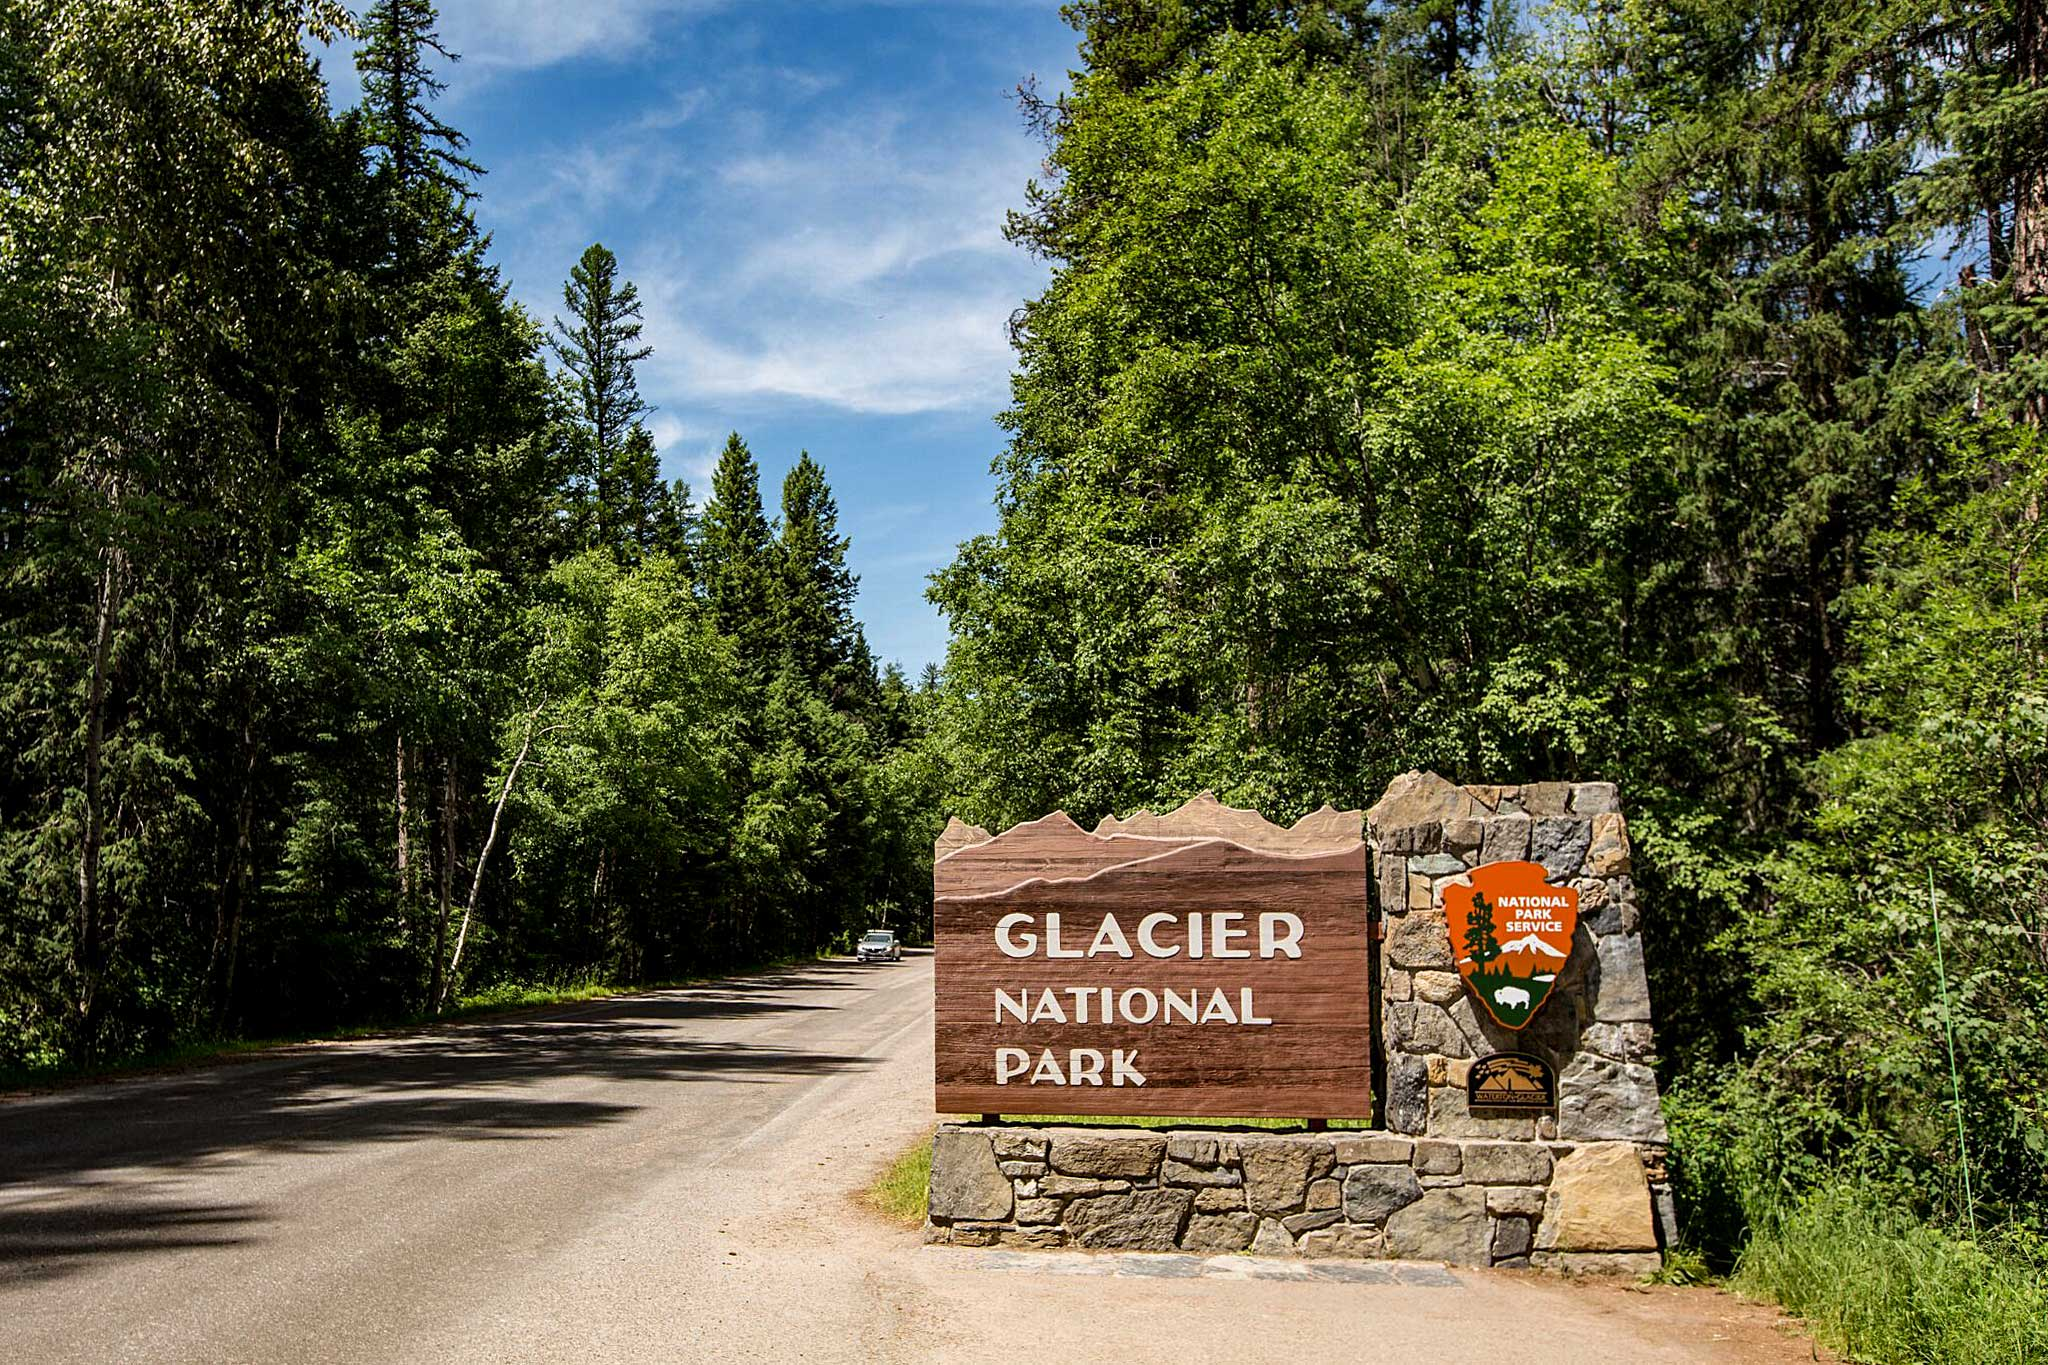 Glacier National Park is right down the road.